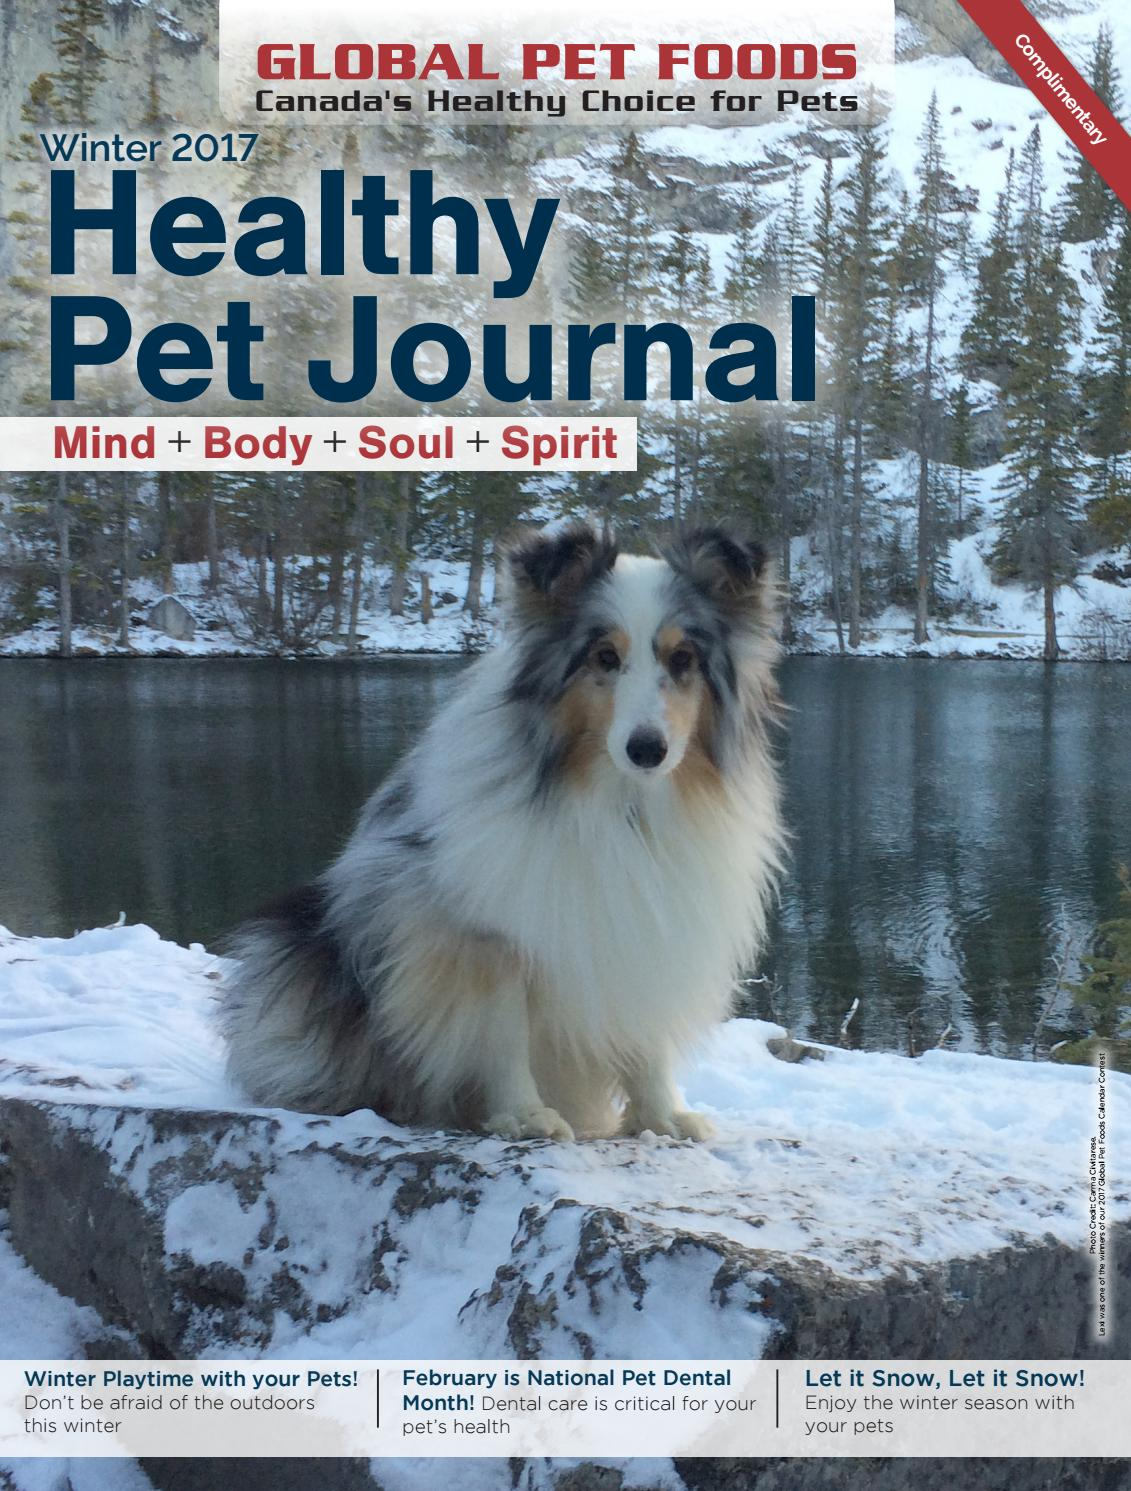 Healthy Pet Journal - Winter, 2017 by Global Pet Foods - issuu